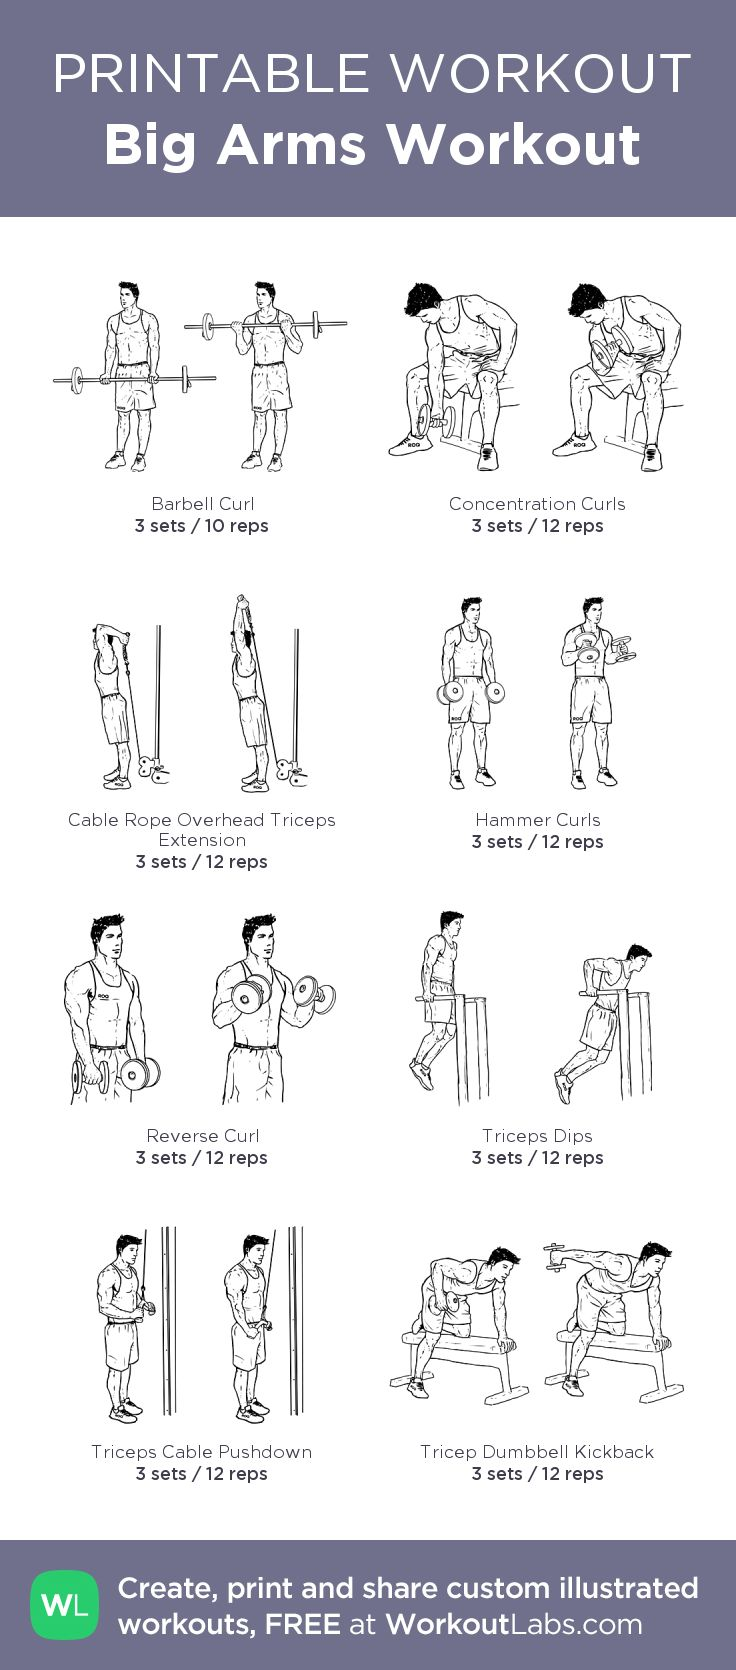 Big Arms Workout: my custom printable workout by @WorkoutLabs #workoutlabs #customworkout